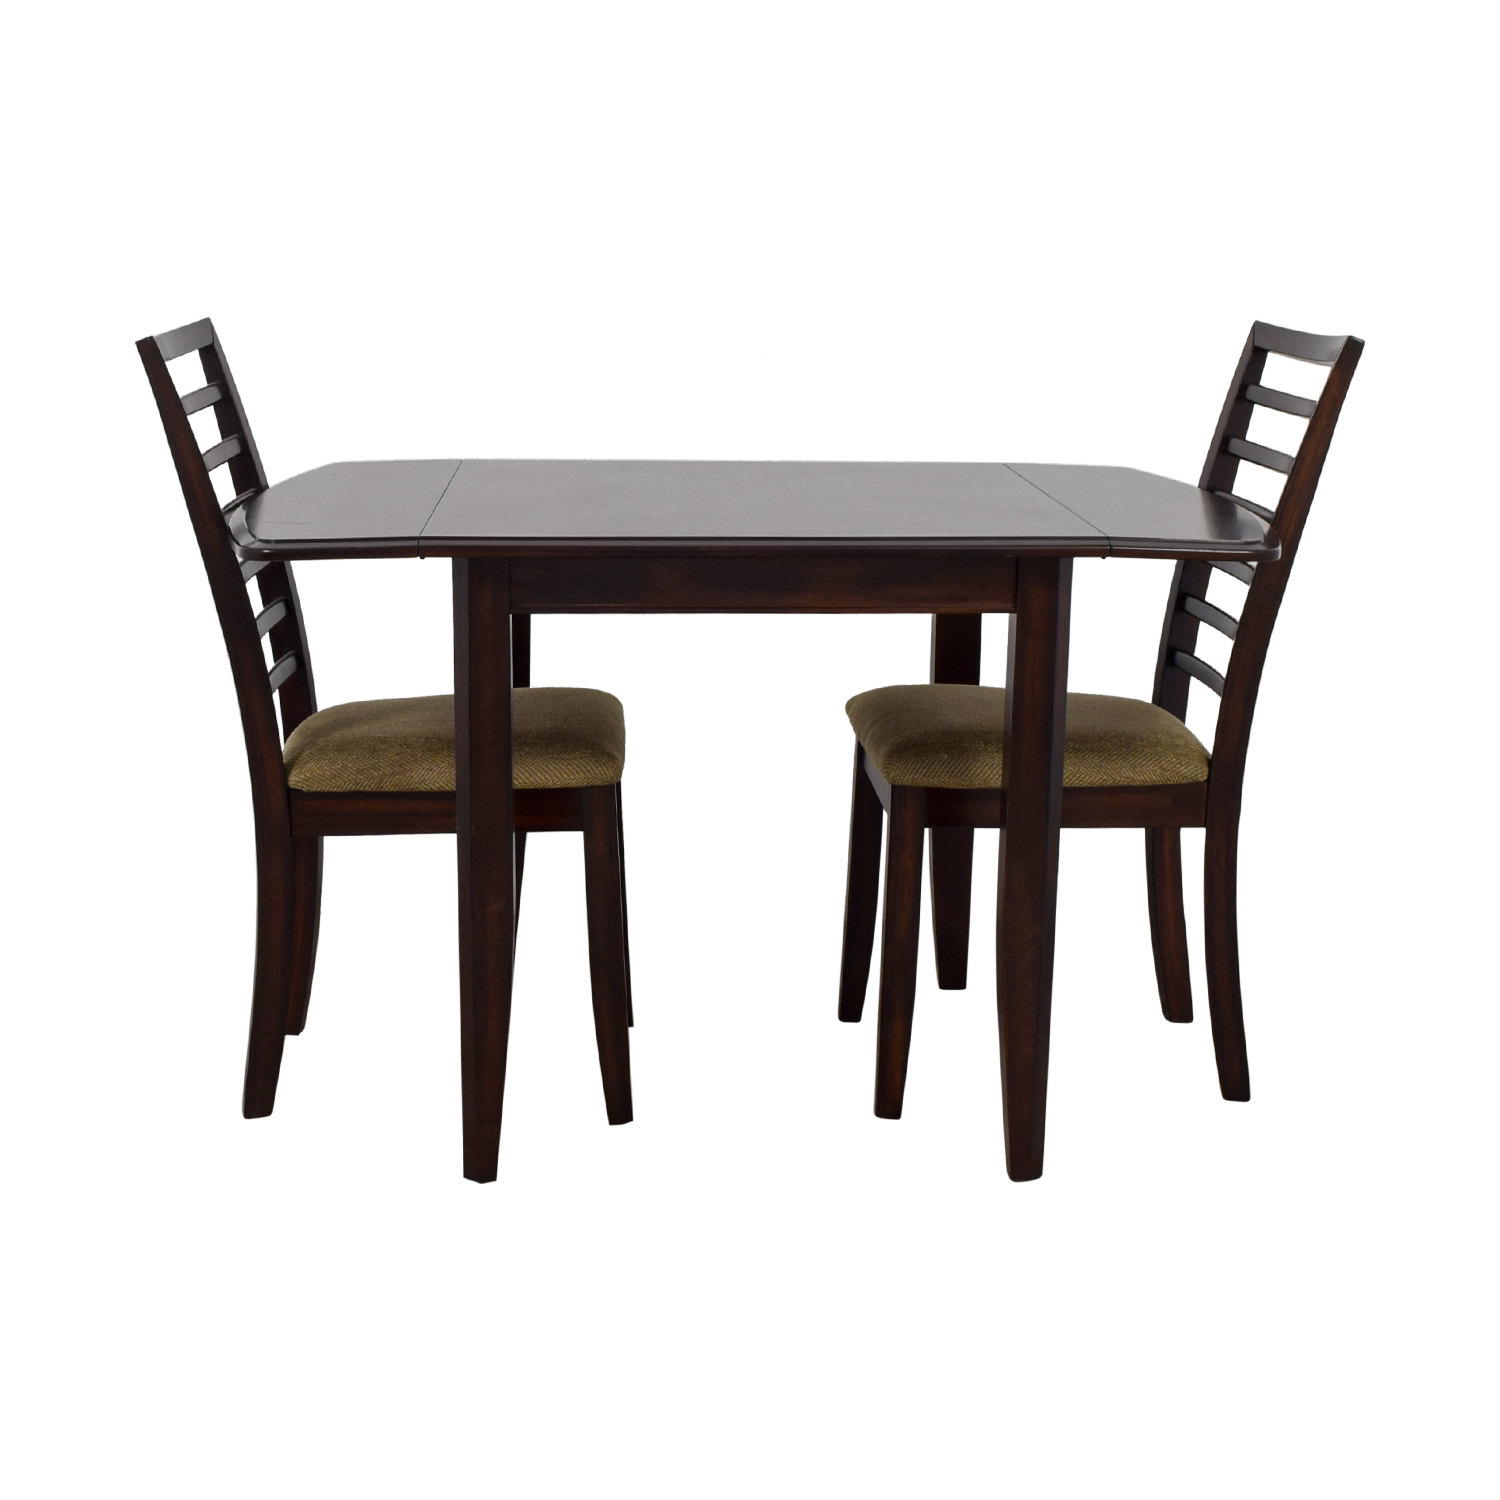 Raymour & Flanigan Raymour & Flanigan Dining Table with Chairs discount